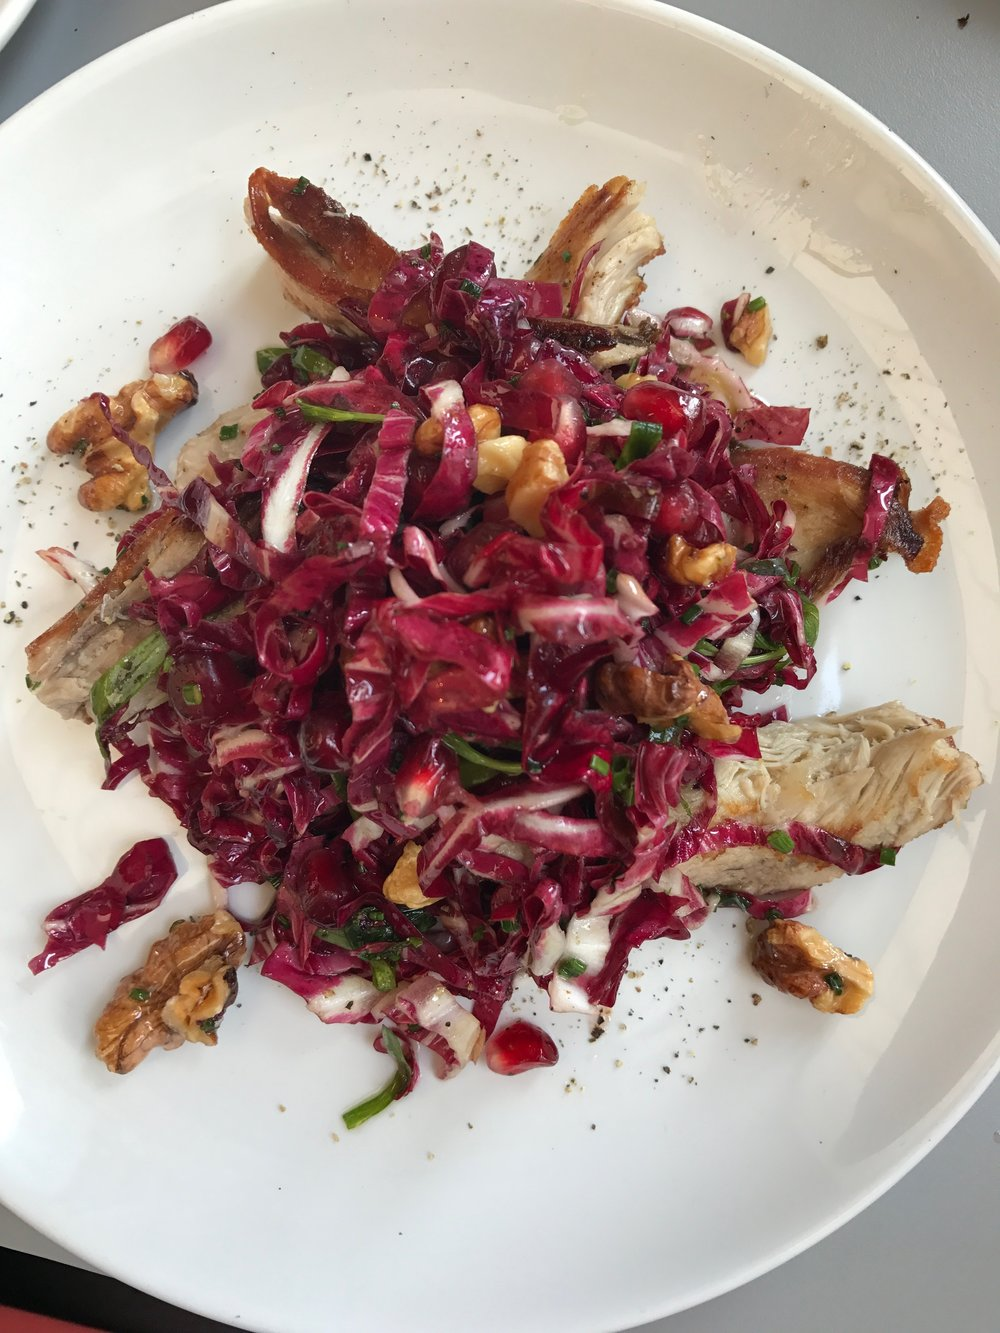 Pheasant, radicchio and pomegranate salad